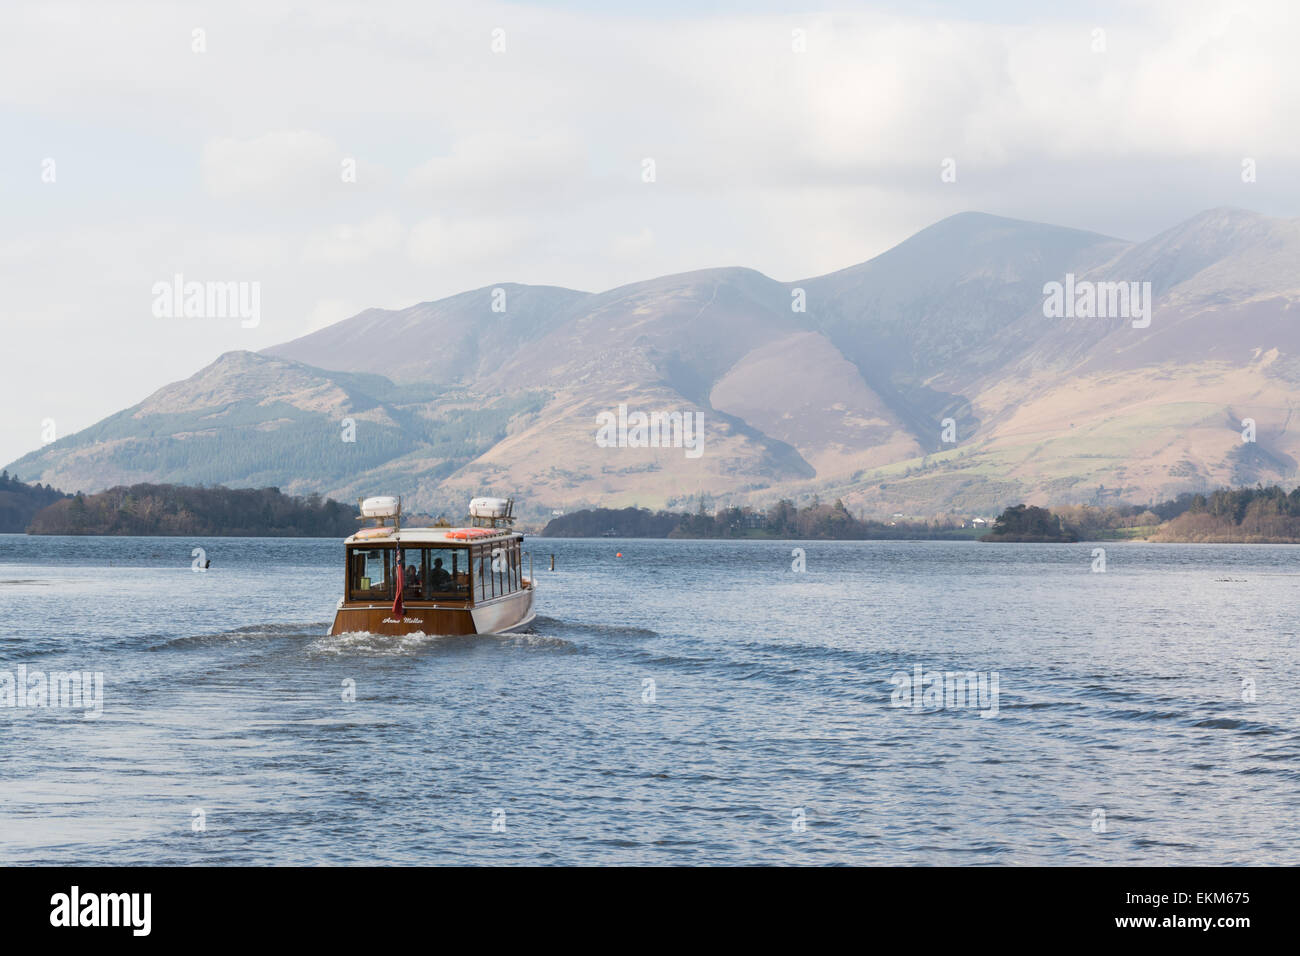 DERWENTWATER, KESWICK, LAKE DISTRICT, ENGLAND - The launch boat heading from Lodore Falls towards Keswick and The - Stock Image